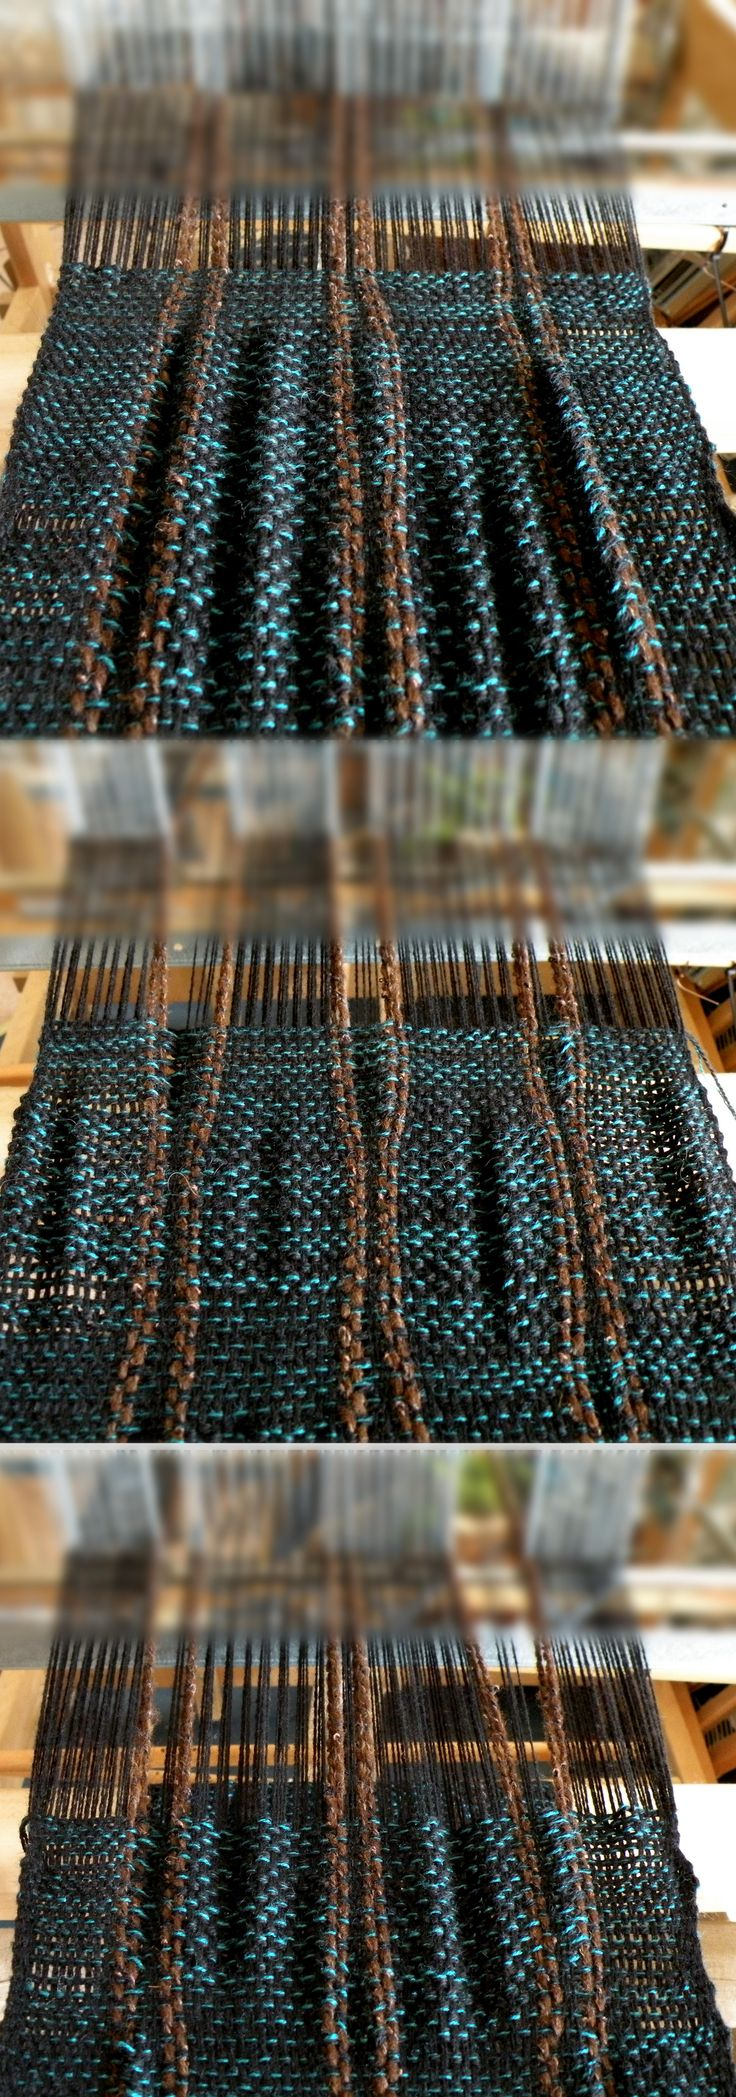 Changing warp densitiy while weaving. Cool!